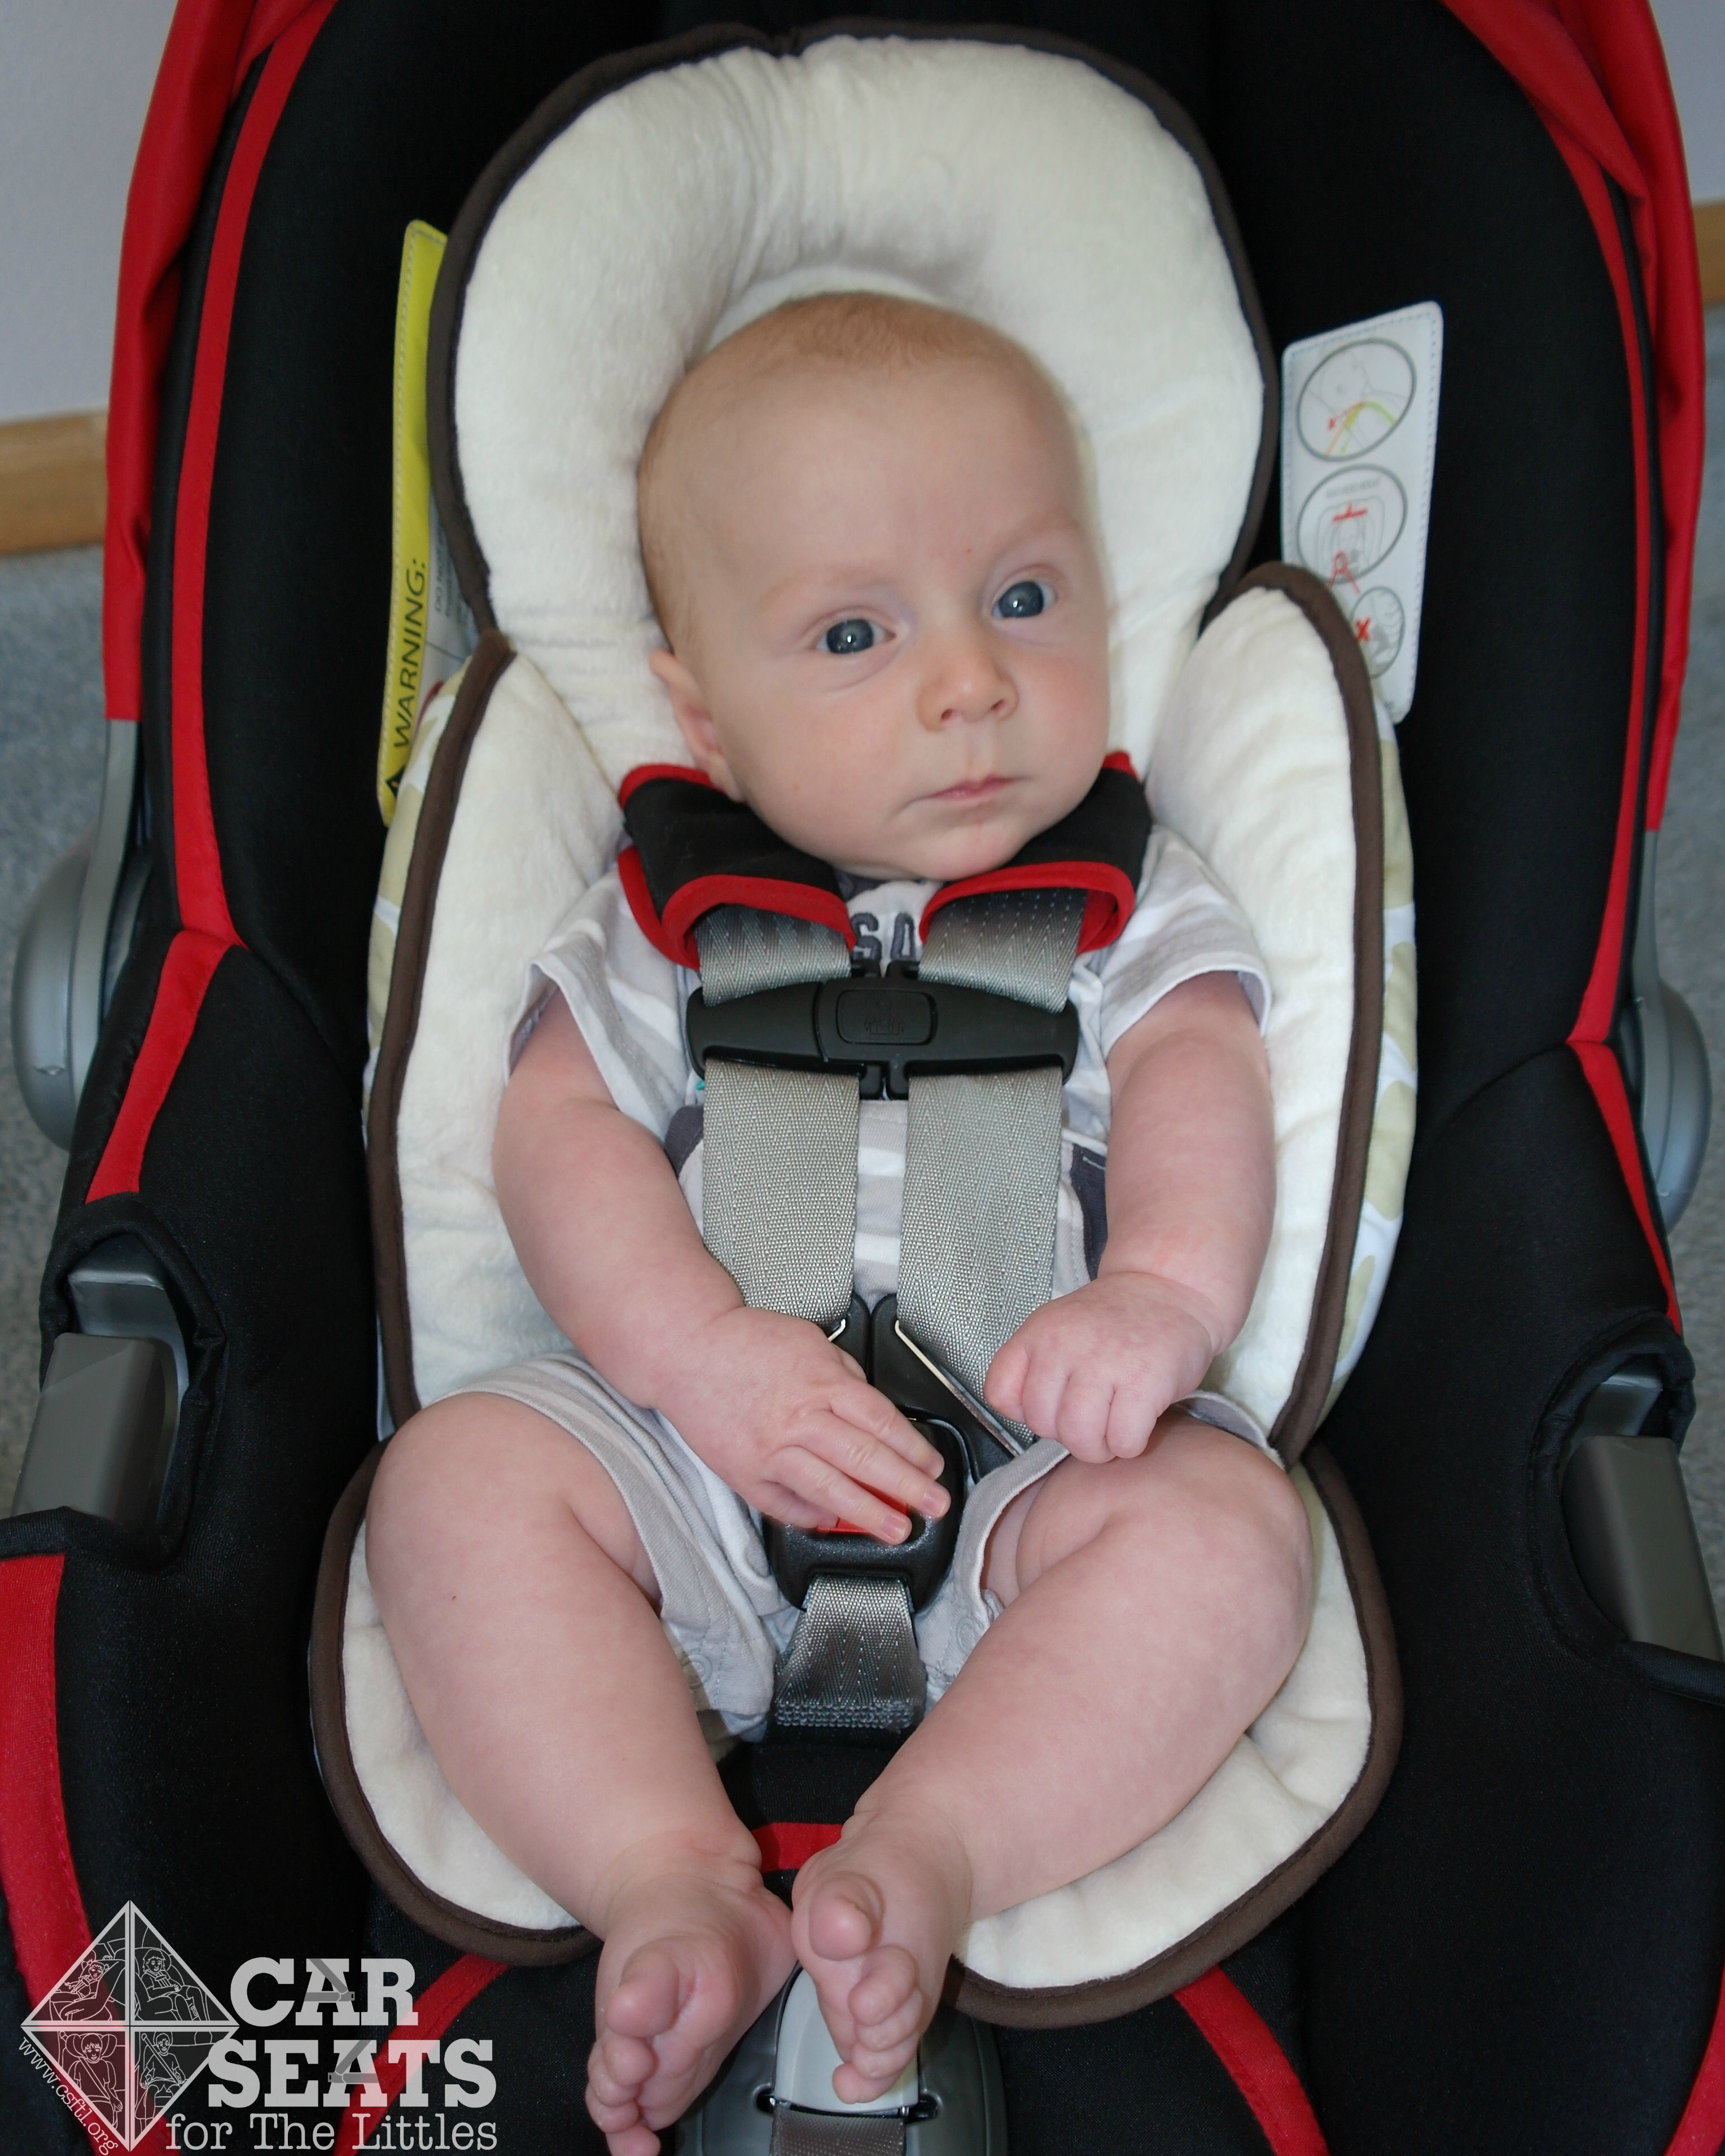 Newborn Car Seat Set Up Non Regulated Products For Car Seats Car Seats For The Littles